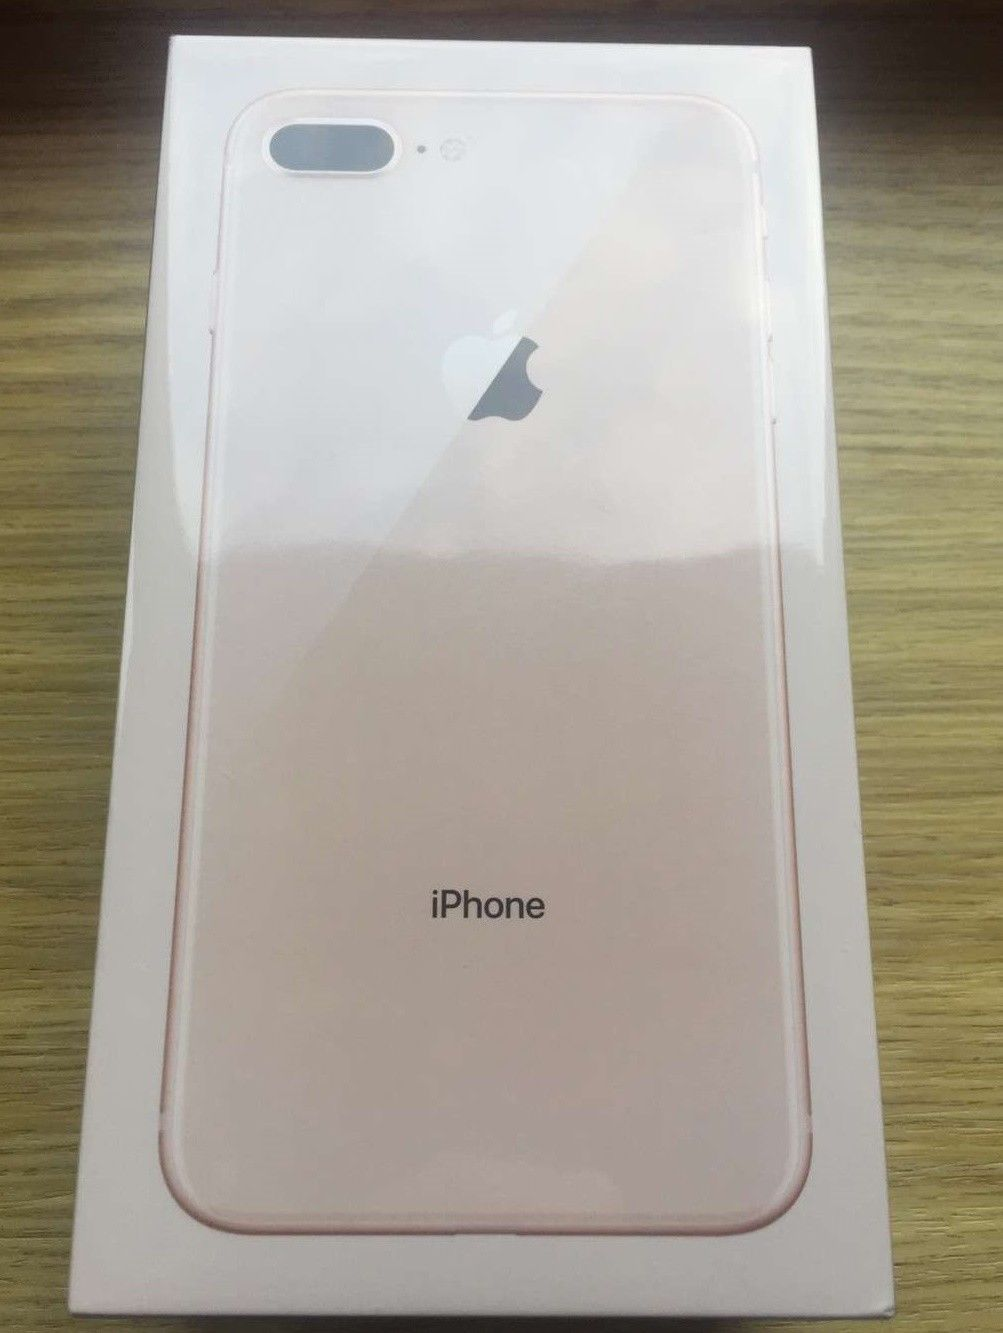 promo is on brand new apple iphone 8 plus for 600 buy 2 get 1 free fresno california. Black Bedroom Furniture Sets. Home Design Ideas